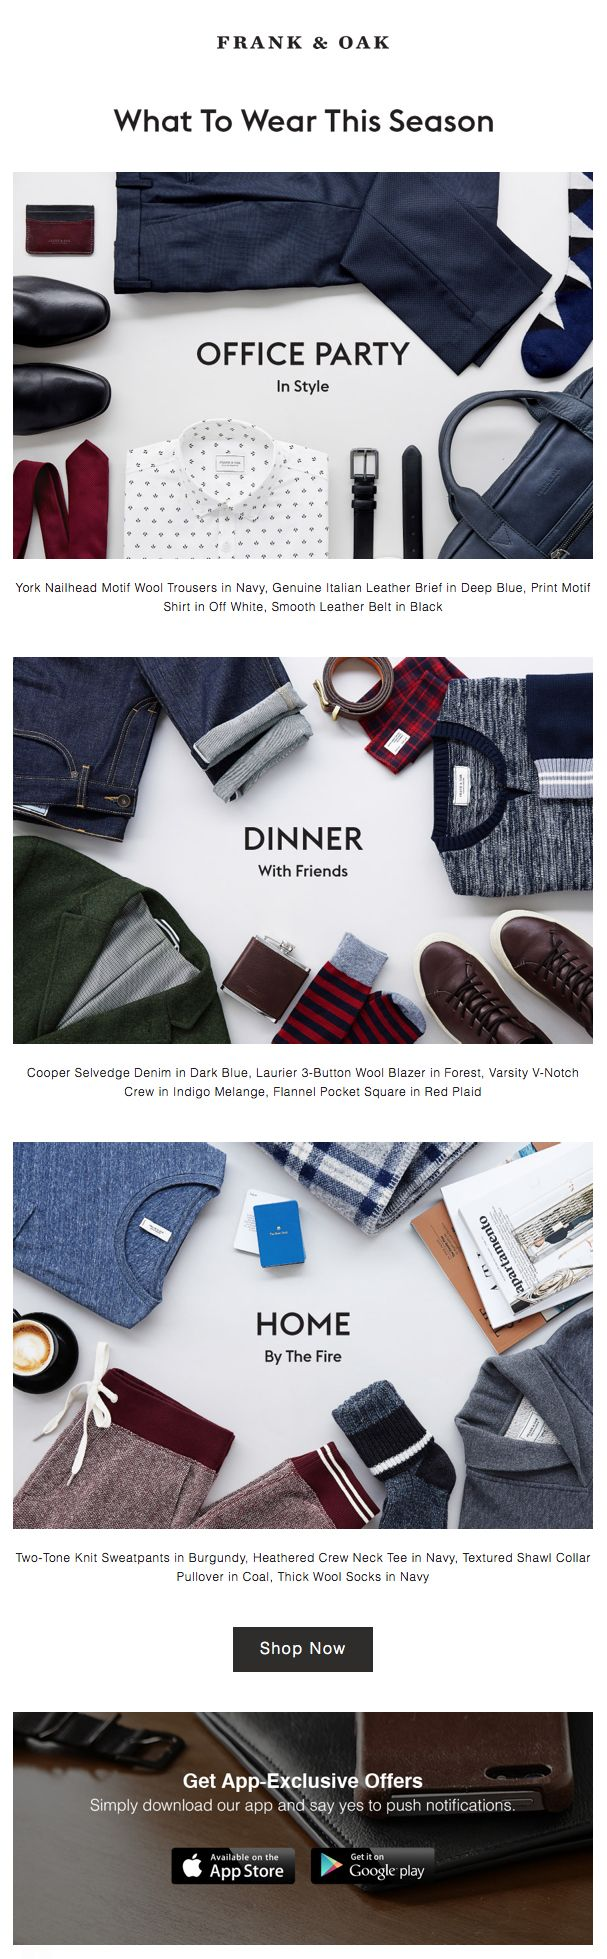 Frank & Oak : Outfitting